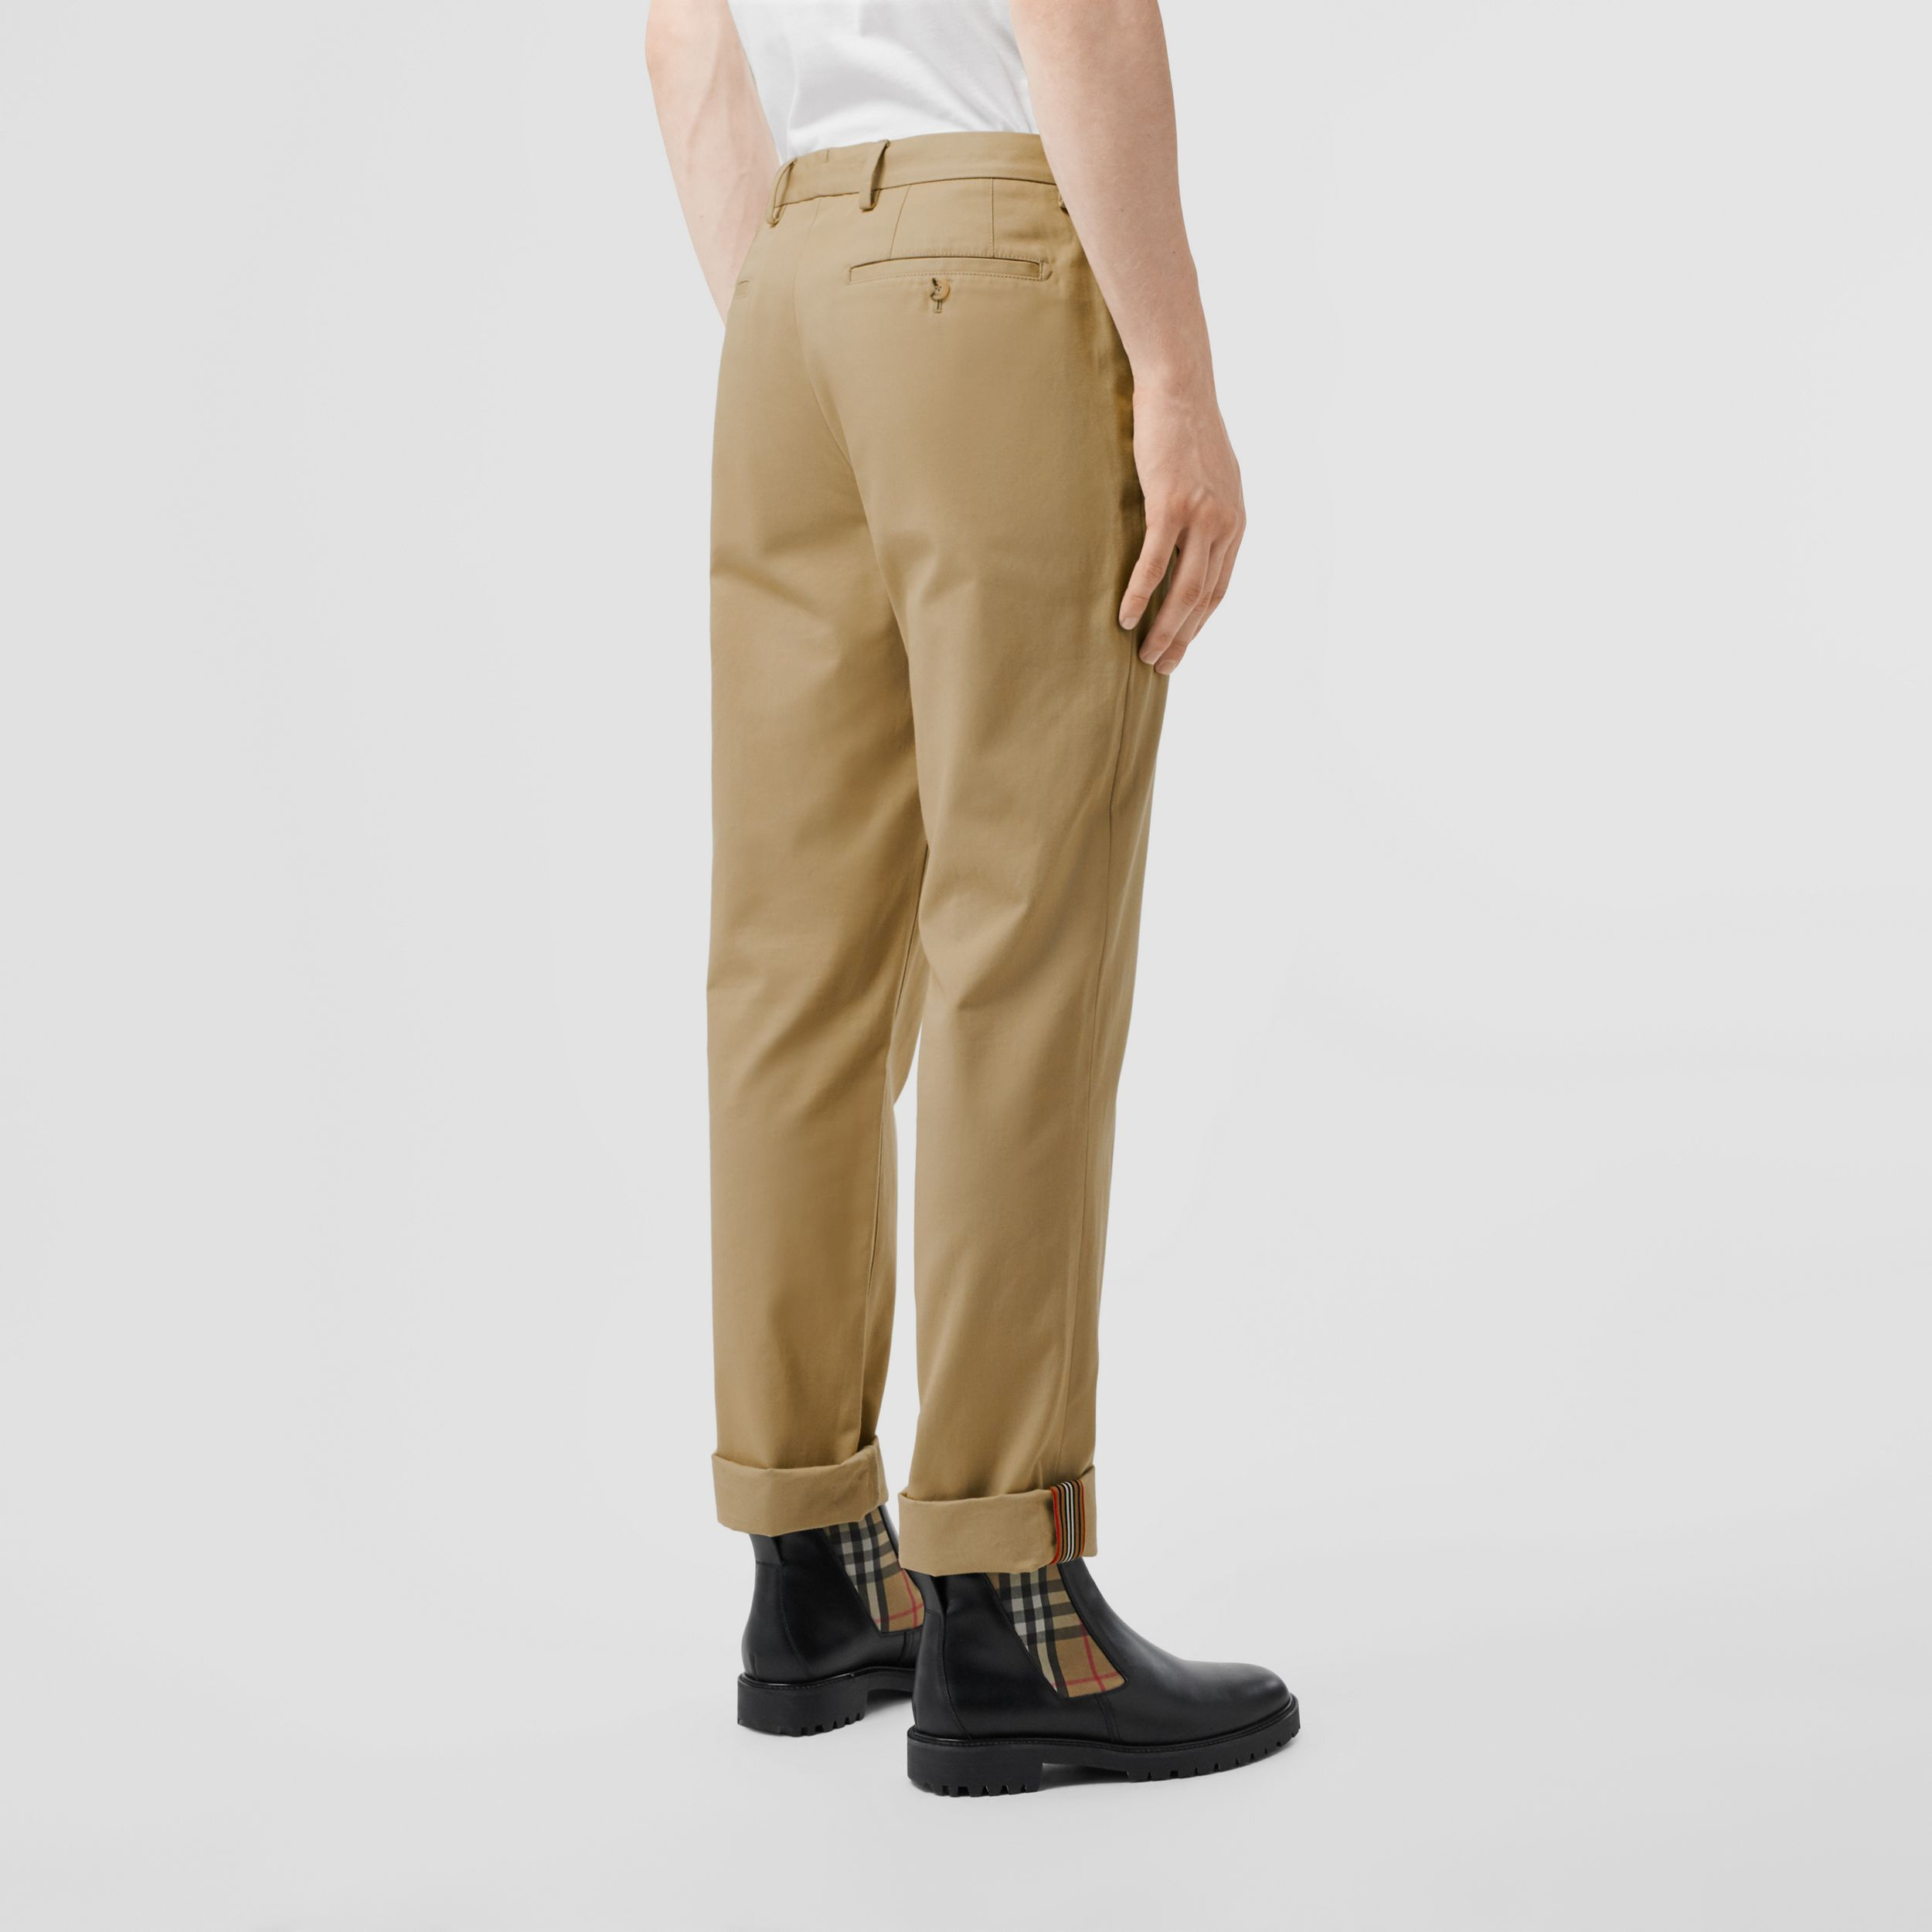 Slim Fit Cotton Chinos in Honey - Men | Burberry - 3